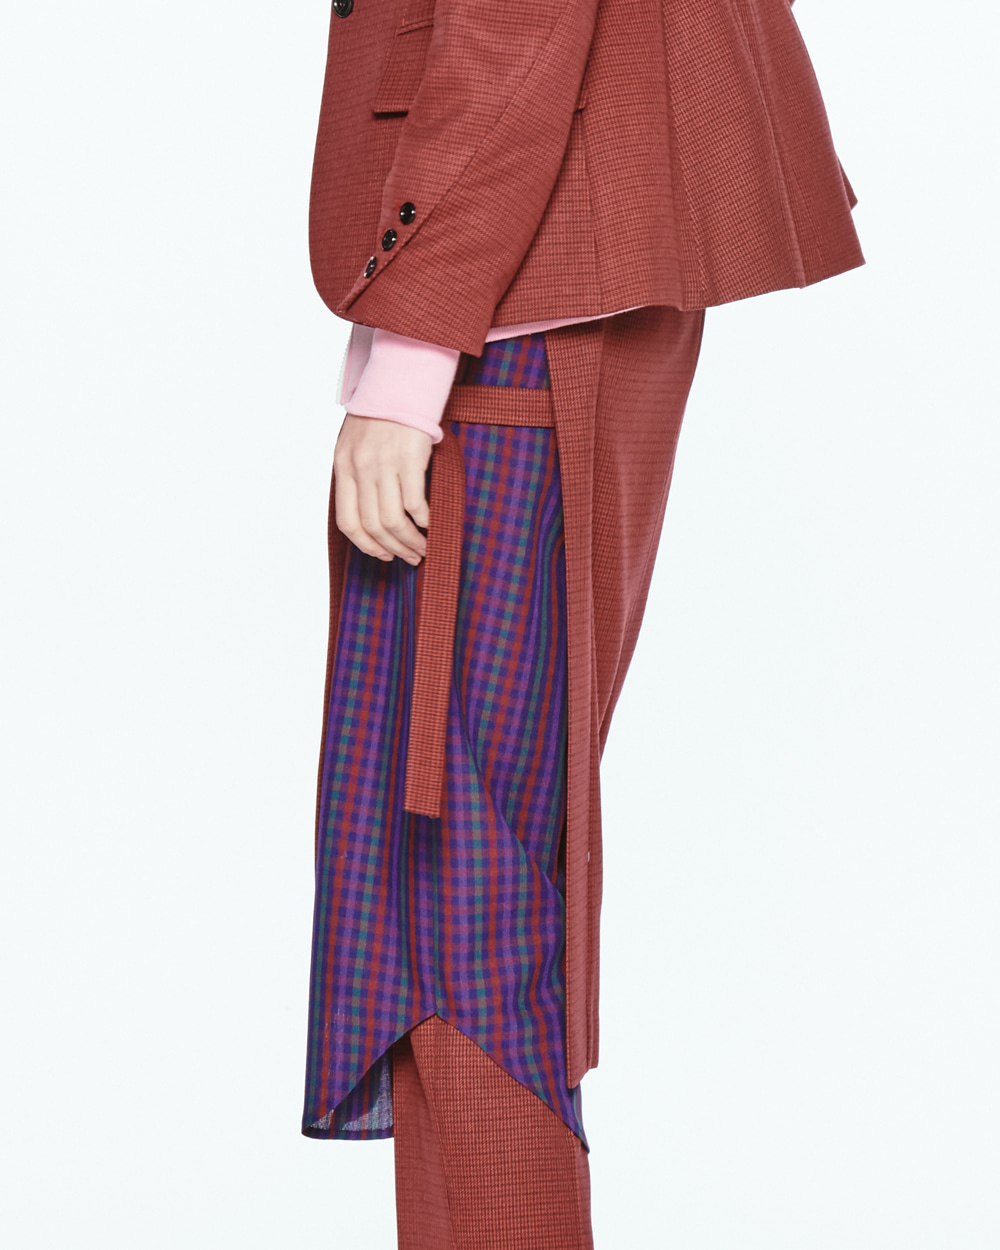 PF20 LAYERED CHECK SIDE OPEN SKIRT